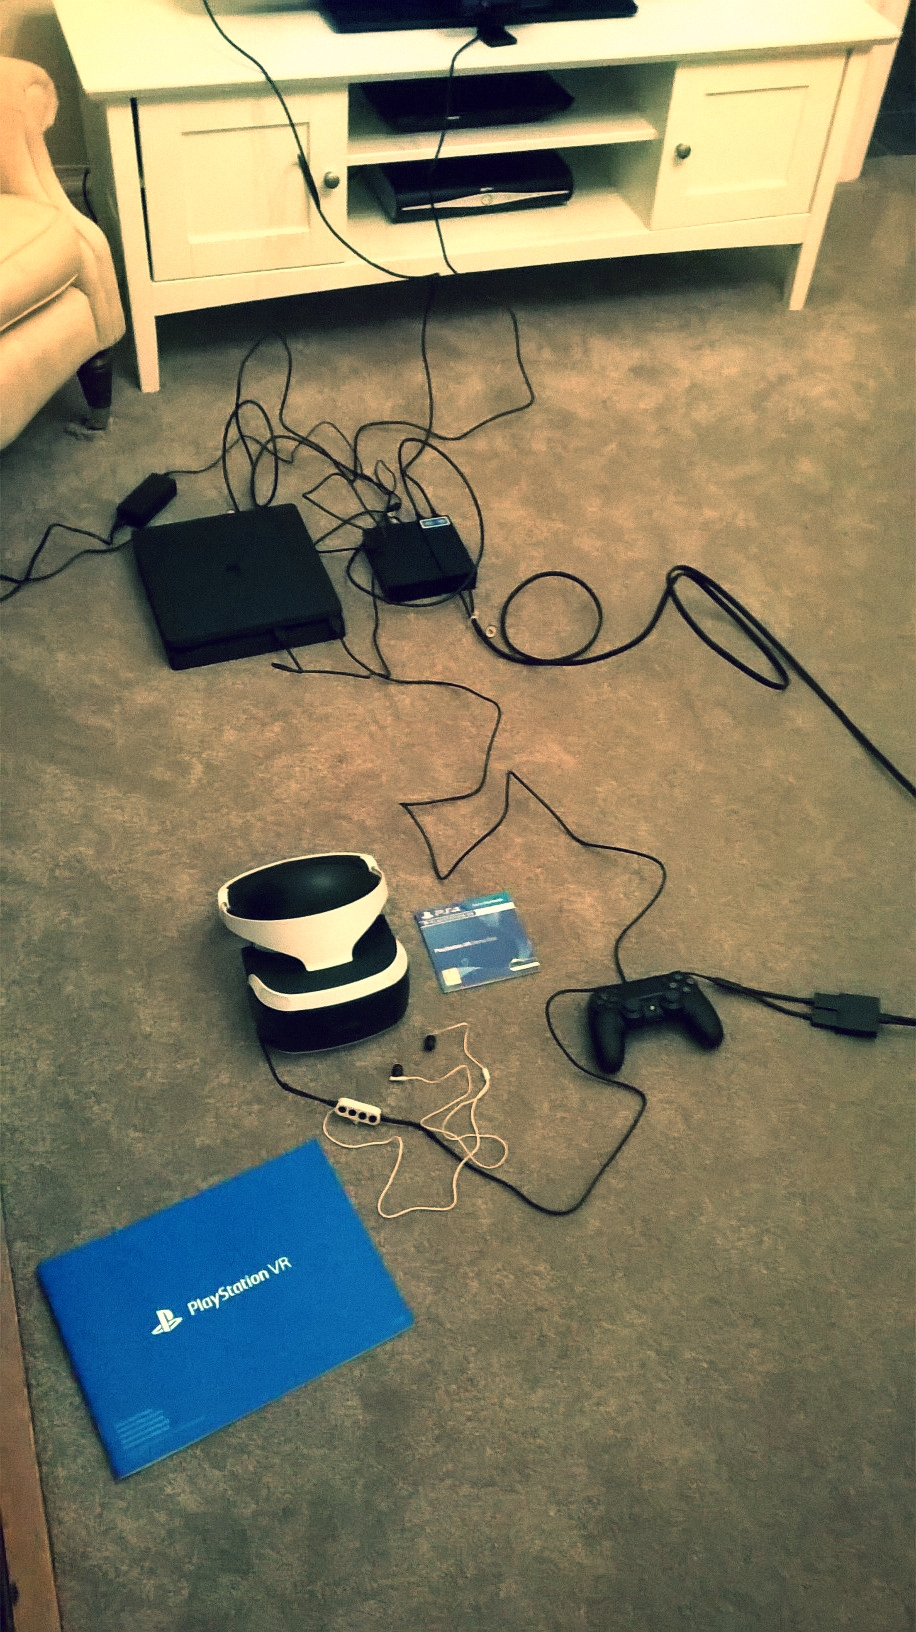 The PSVR does require a lot of wires.